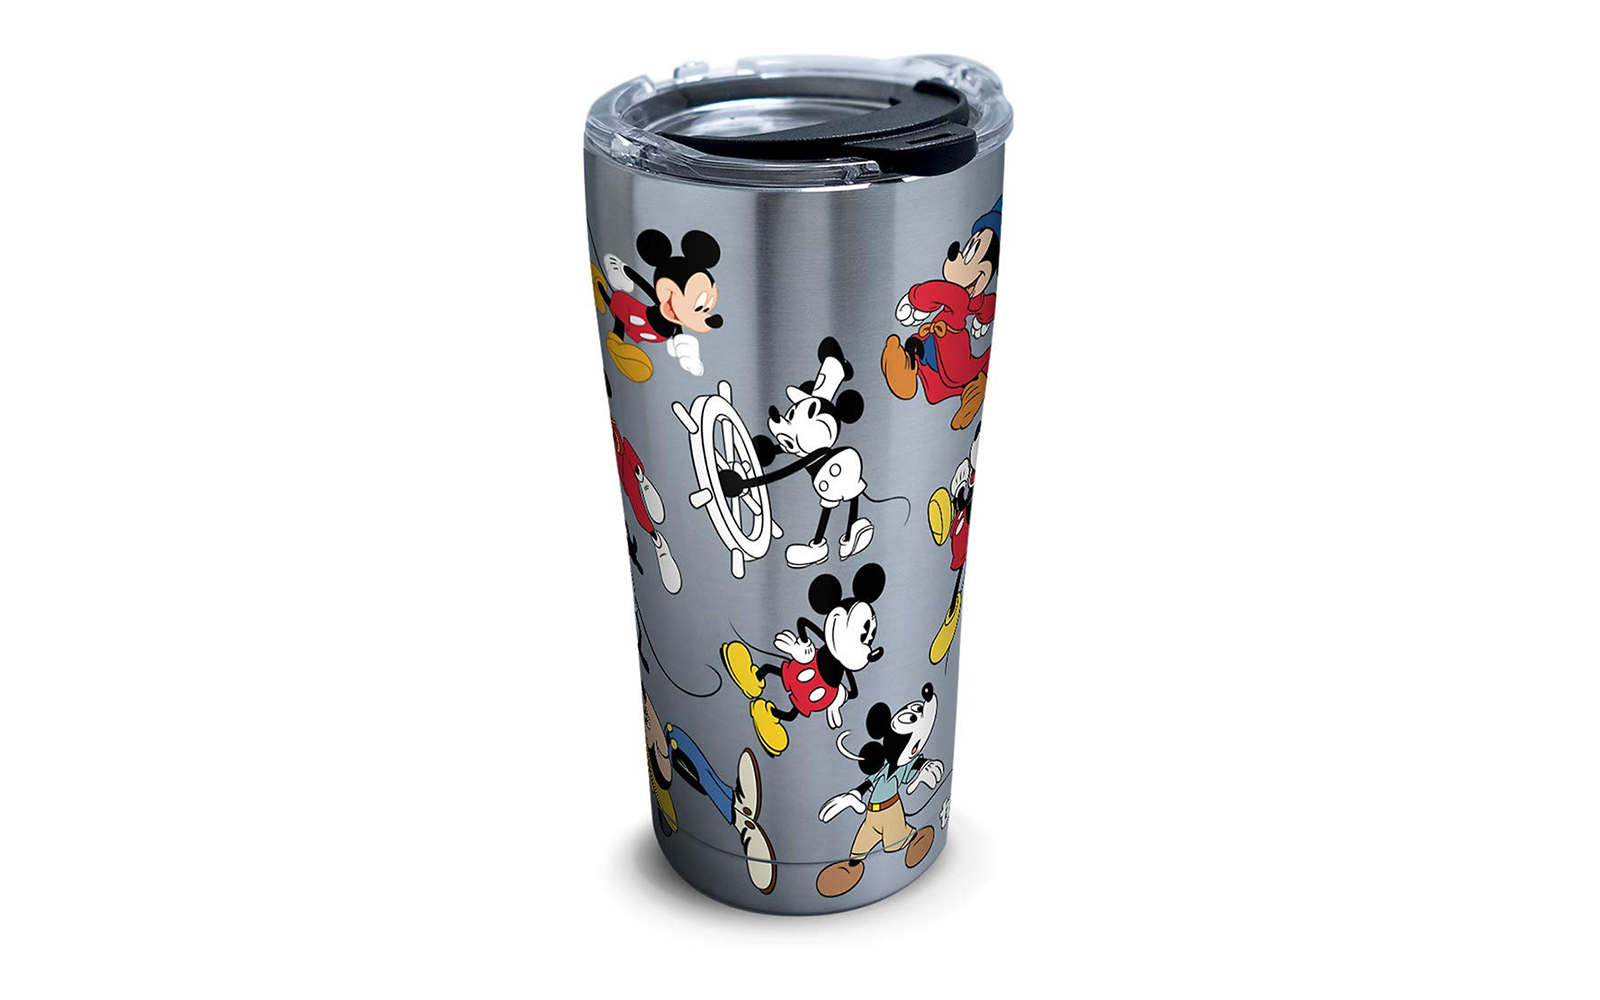 Tervis Disney Mickey Mouse 90th Birthday Stainless Steel Tumbler